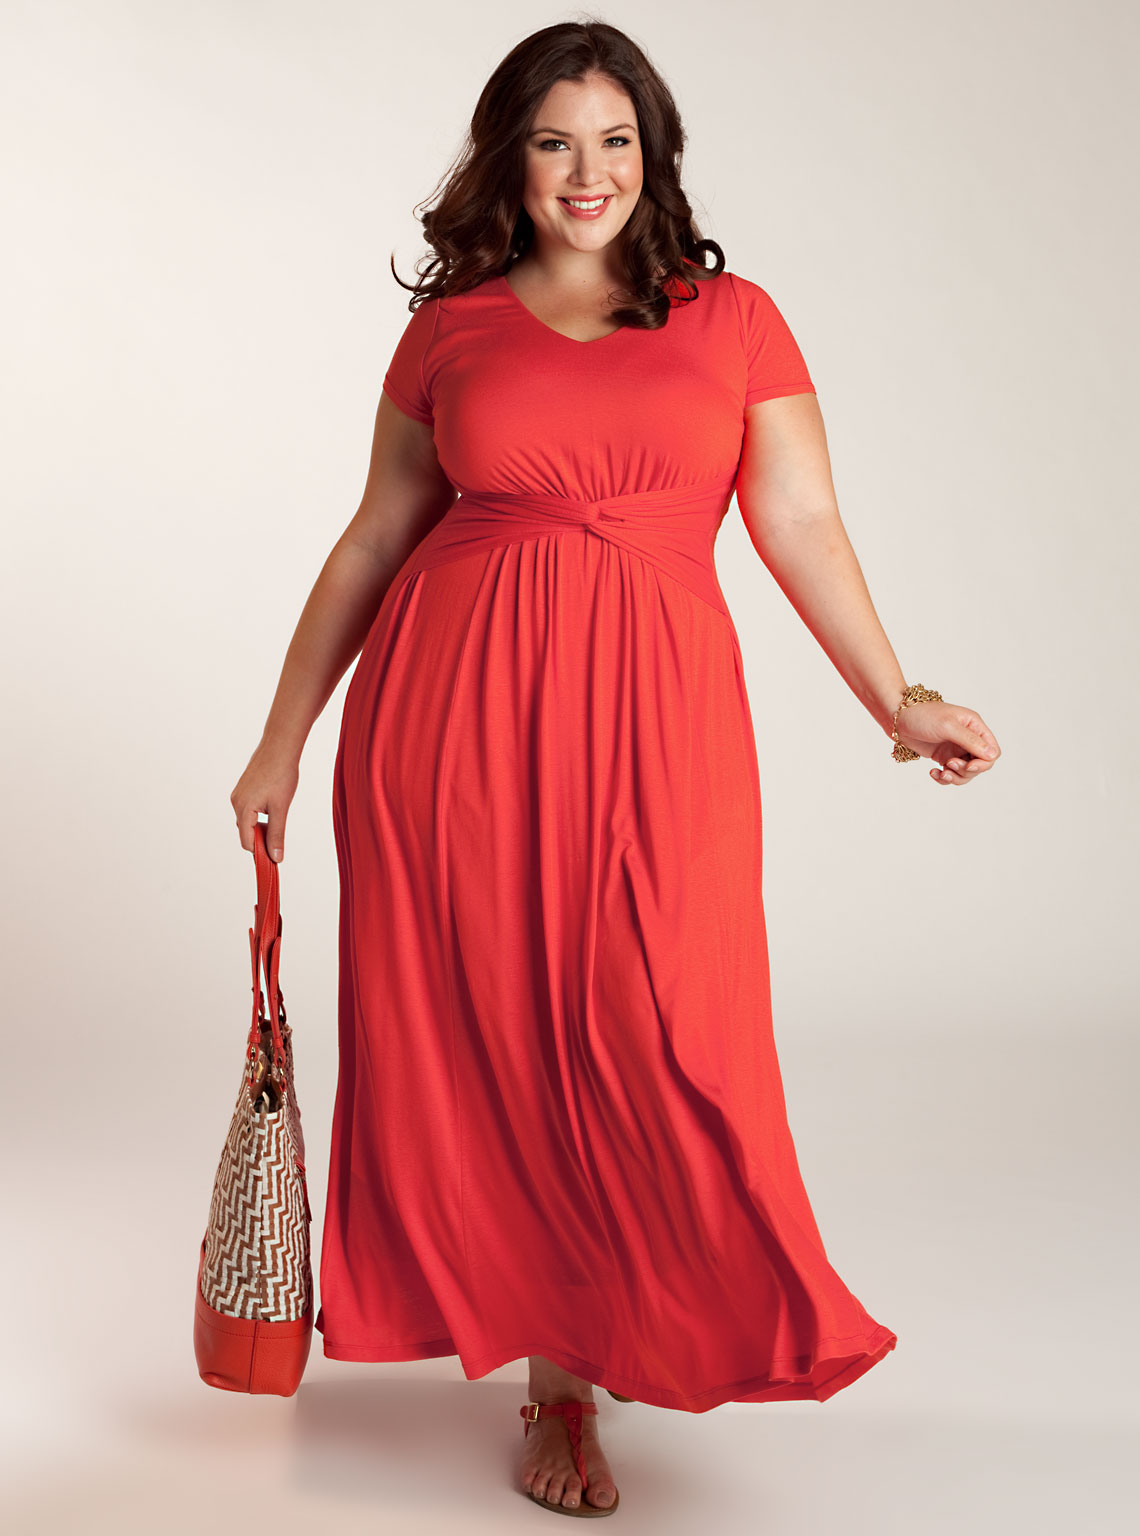 Plus Size Maxi Dreses For Sumer Weding 031 - Plus Size Maxi Dreses For Sumer Weding